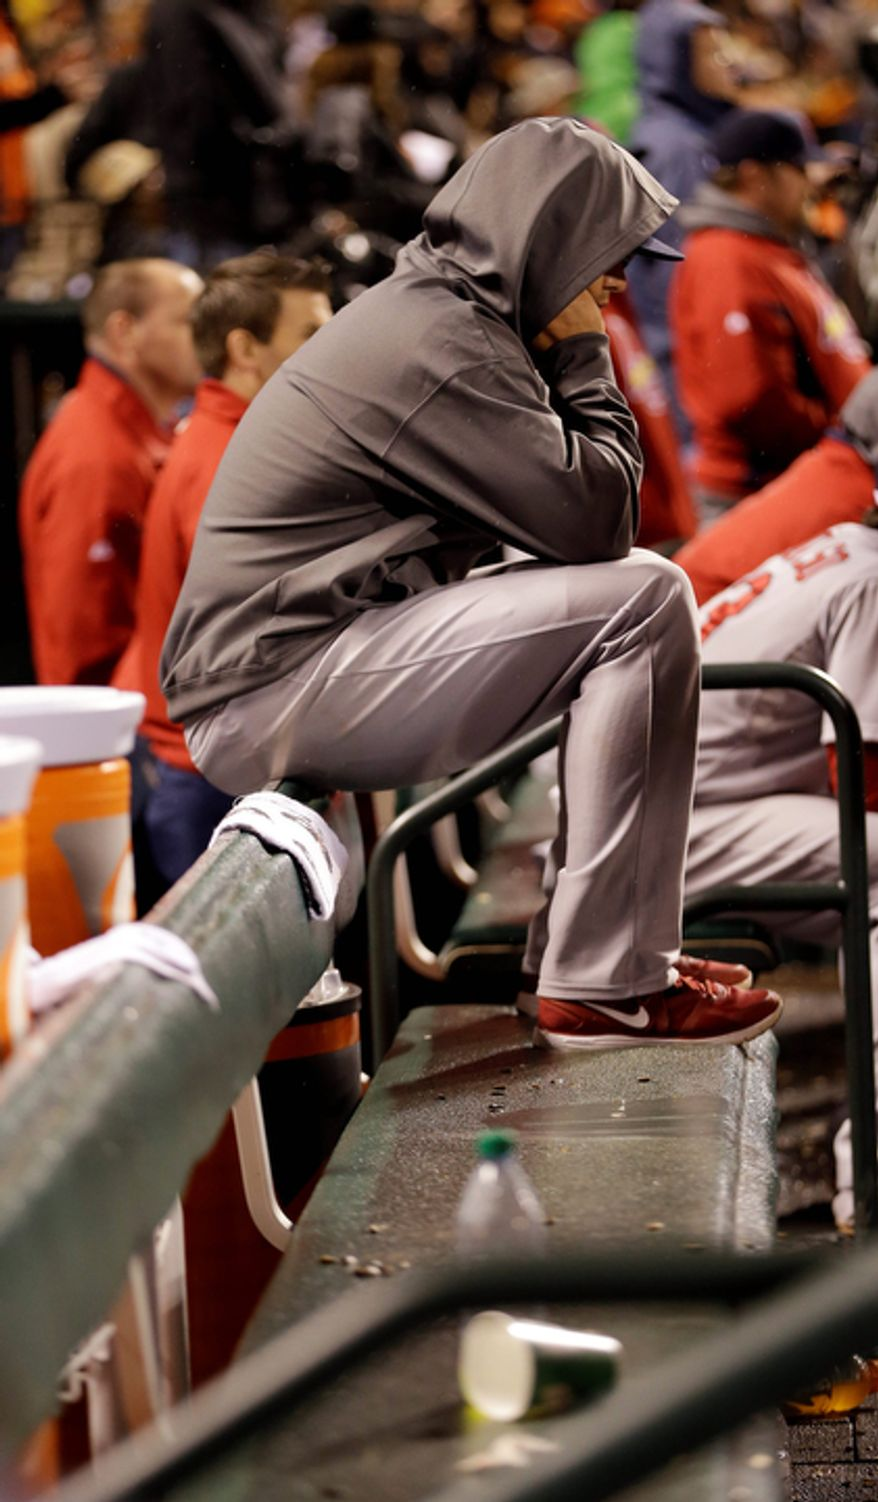 St. Louis Cardinals starting pitcher Kyle Lohse sits on the bench during the eighth inning of Game 7 of the National League Championship Series between the Cardinals and the San Francisco Giants on Oct. 22, 2012, in San Francisco. (Associated Press)